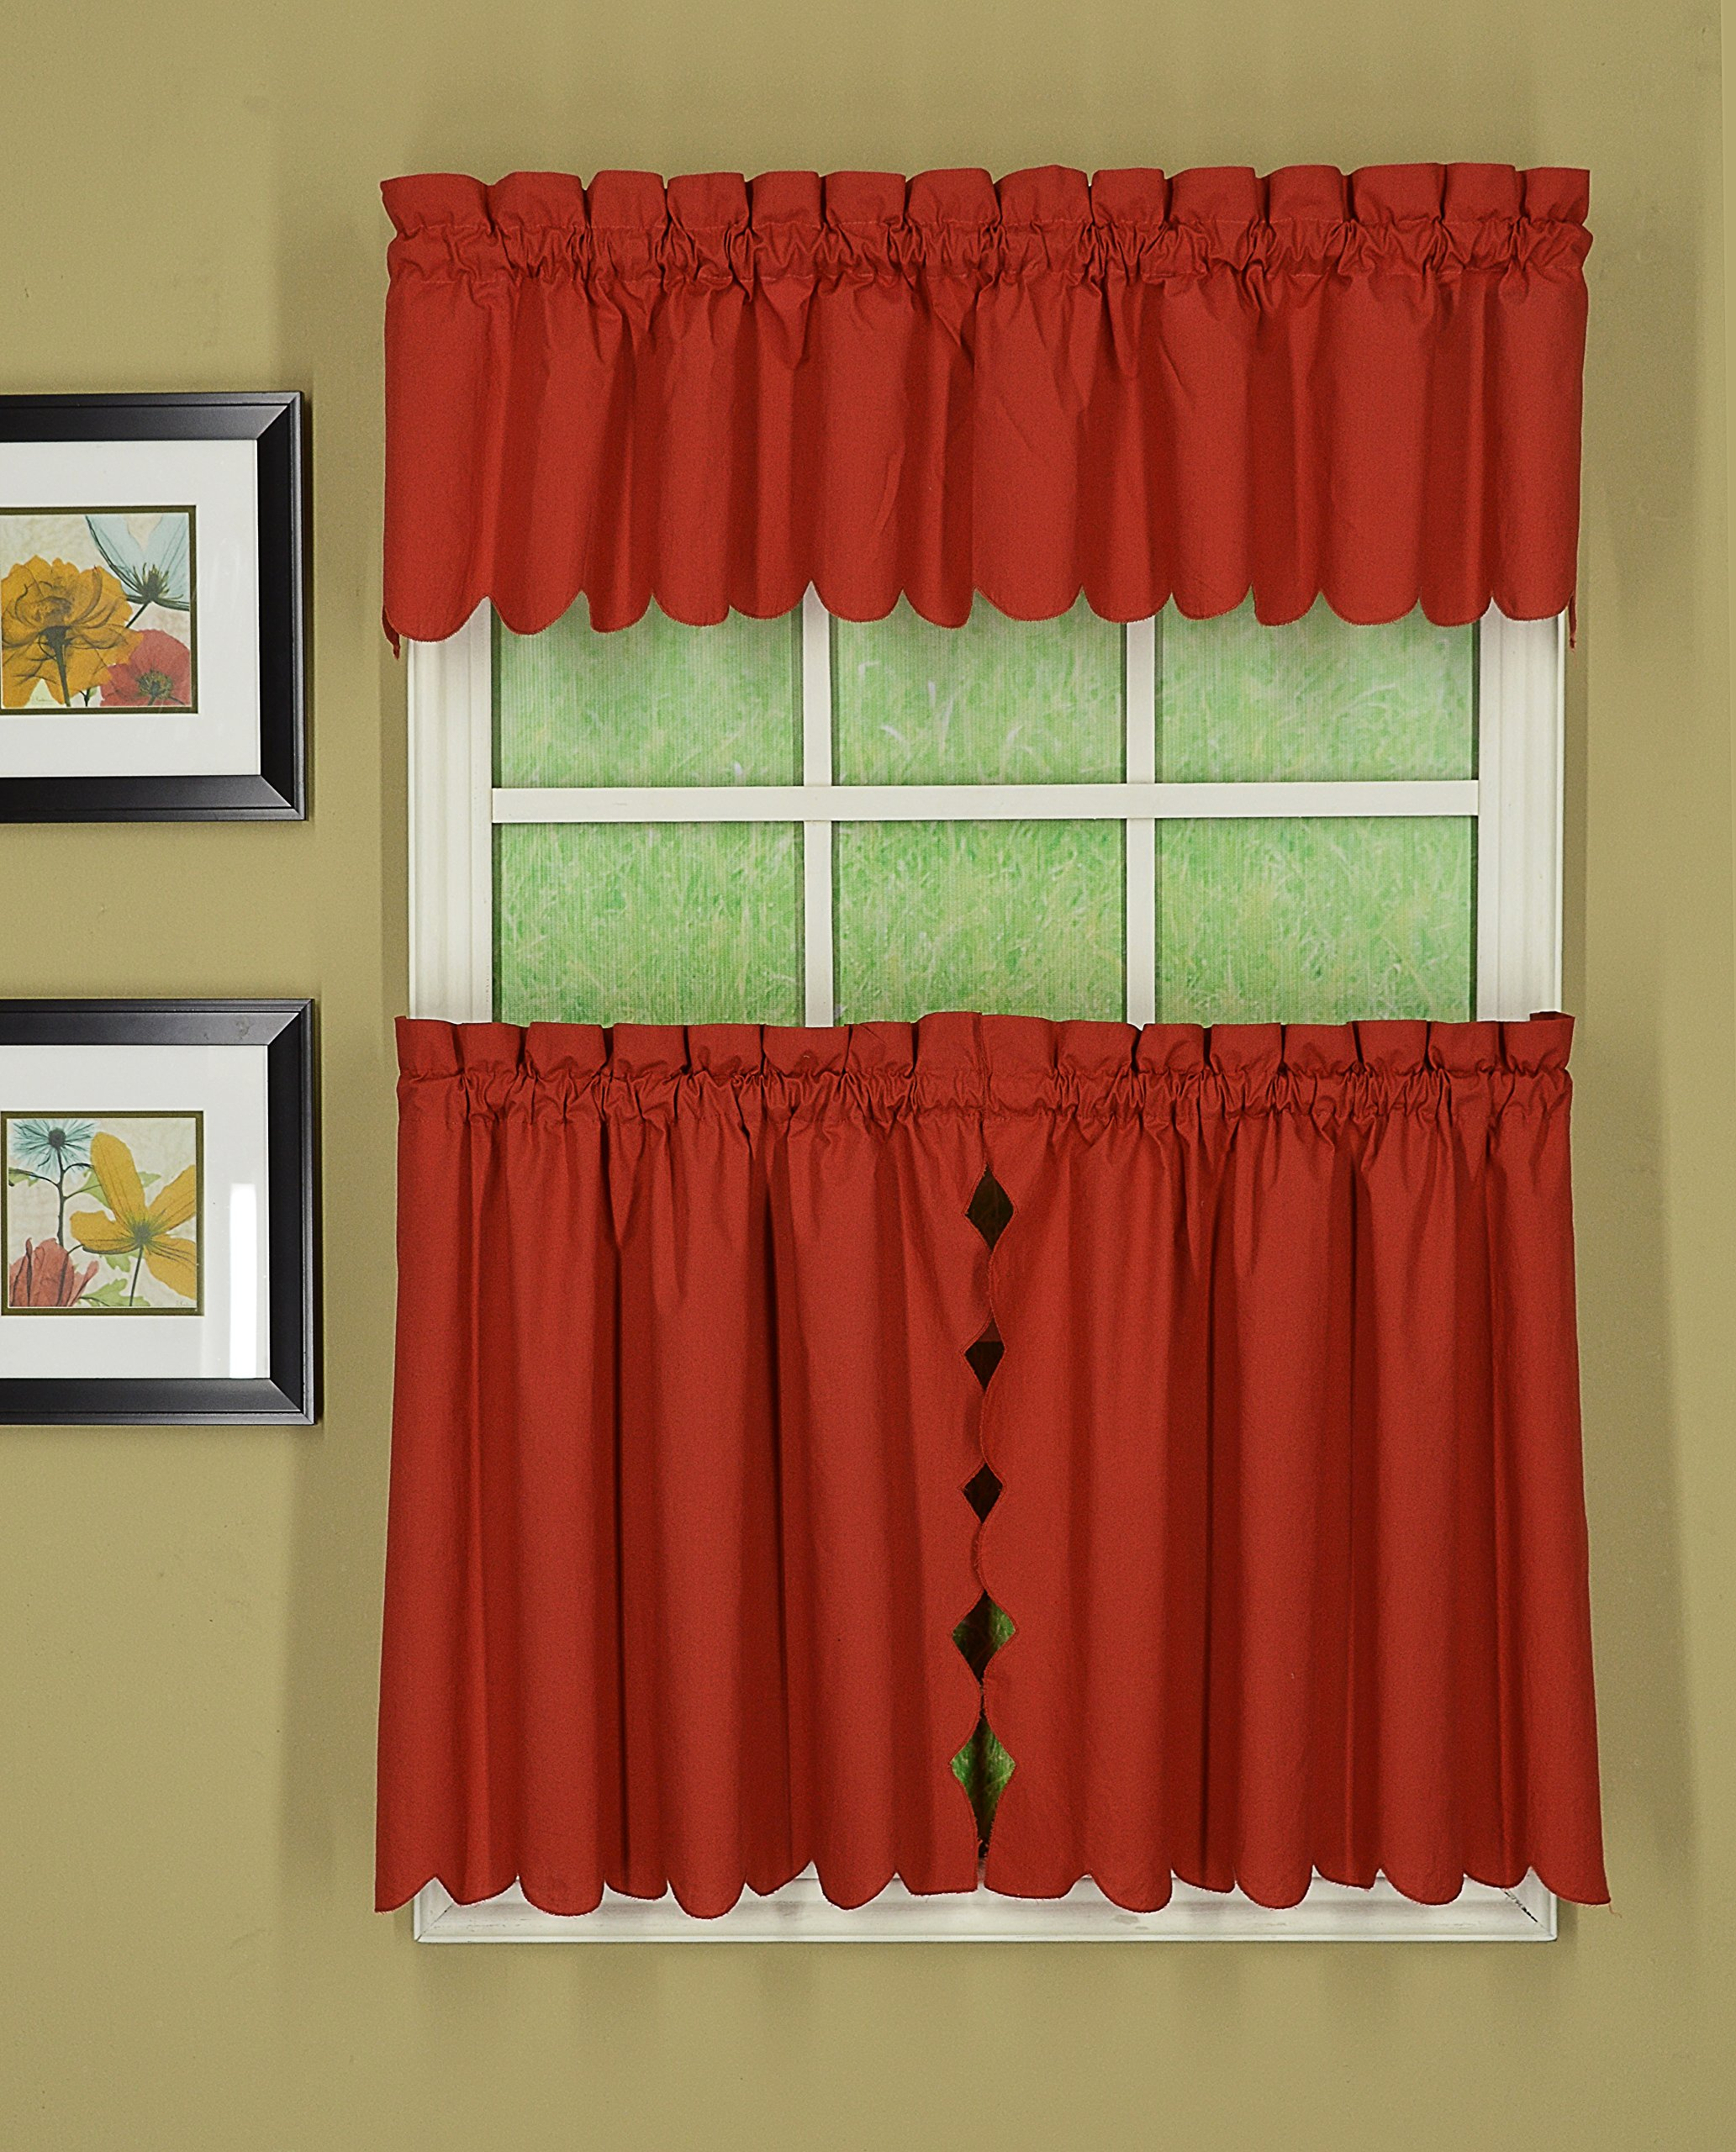 Today's Curtain CA2003K Orleans 24'' Tier Pair Tambour Scallop Edge Curtain, Brick Red, 60'' W x 24'' L